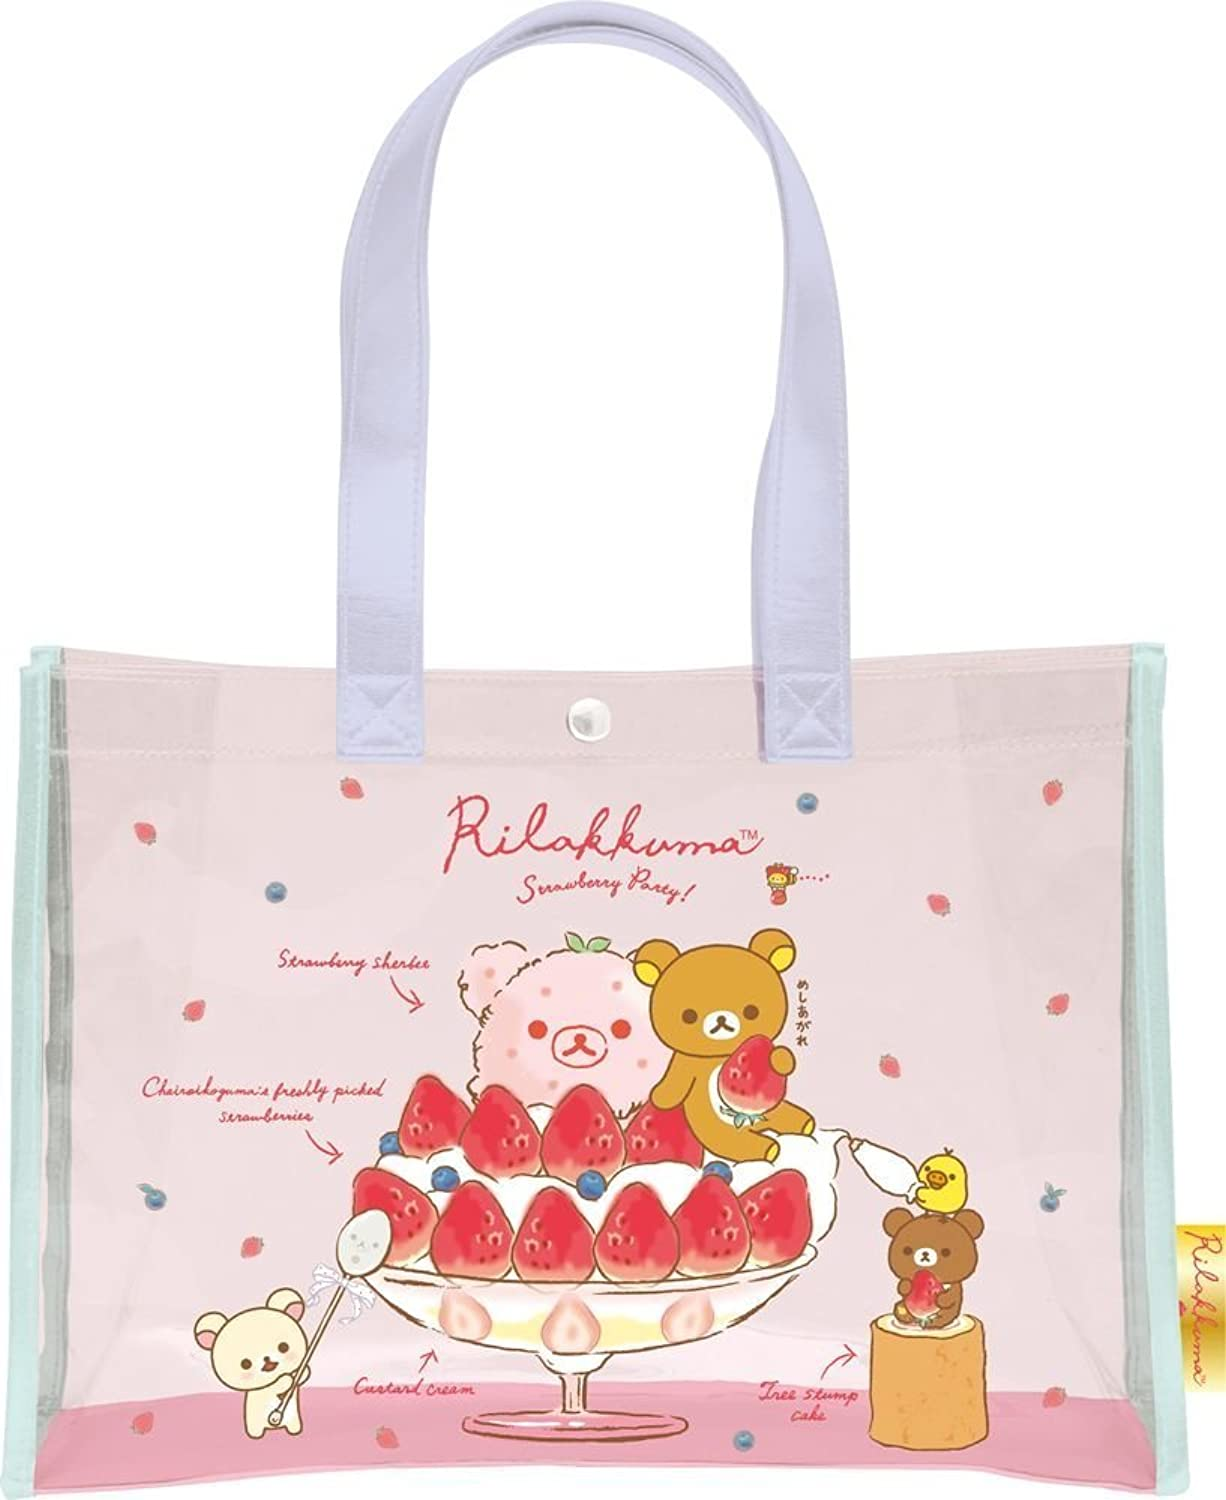 Rilakkuma Tote Pool & Beach Bag (Strawberry Party) BV38201